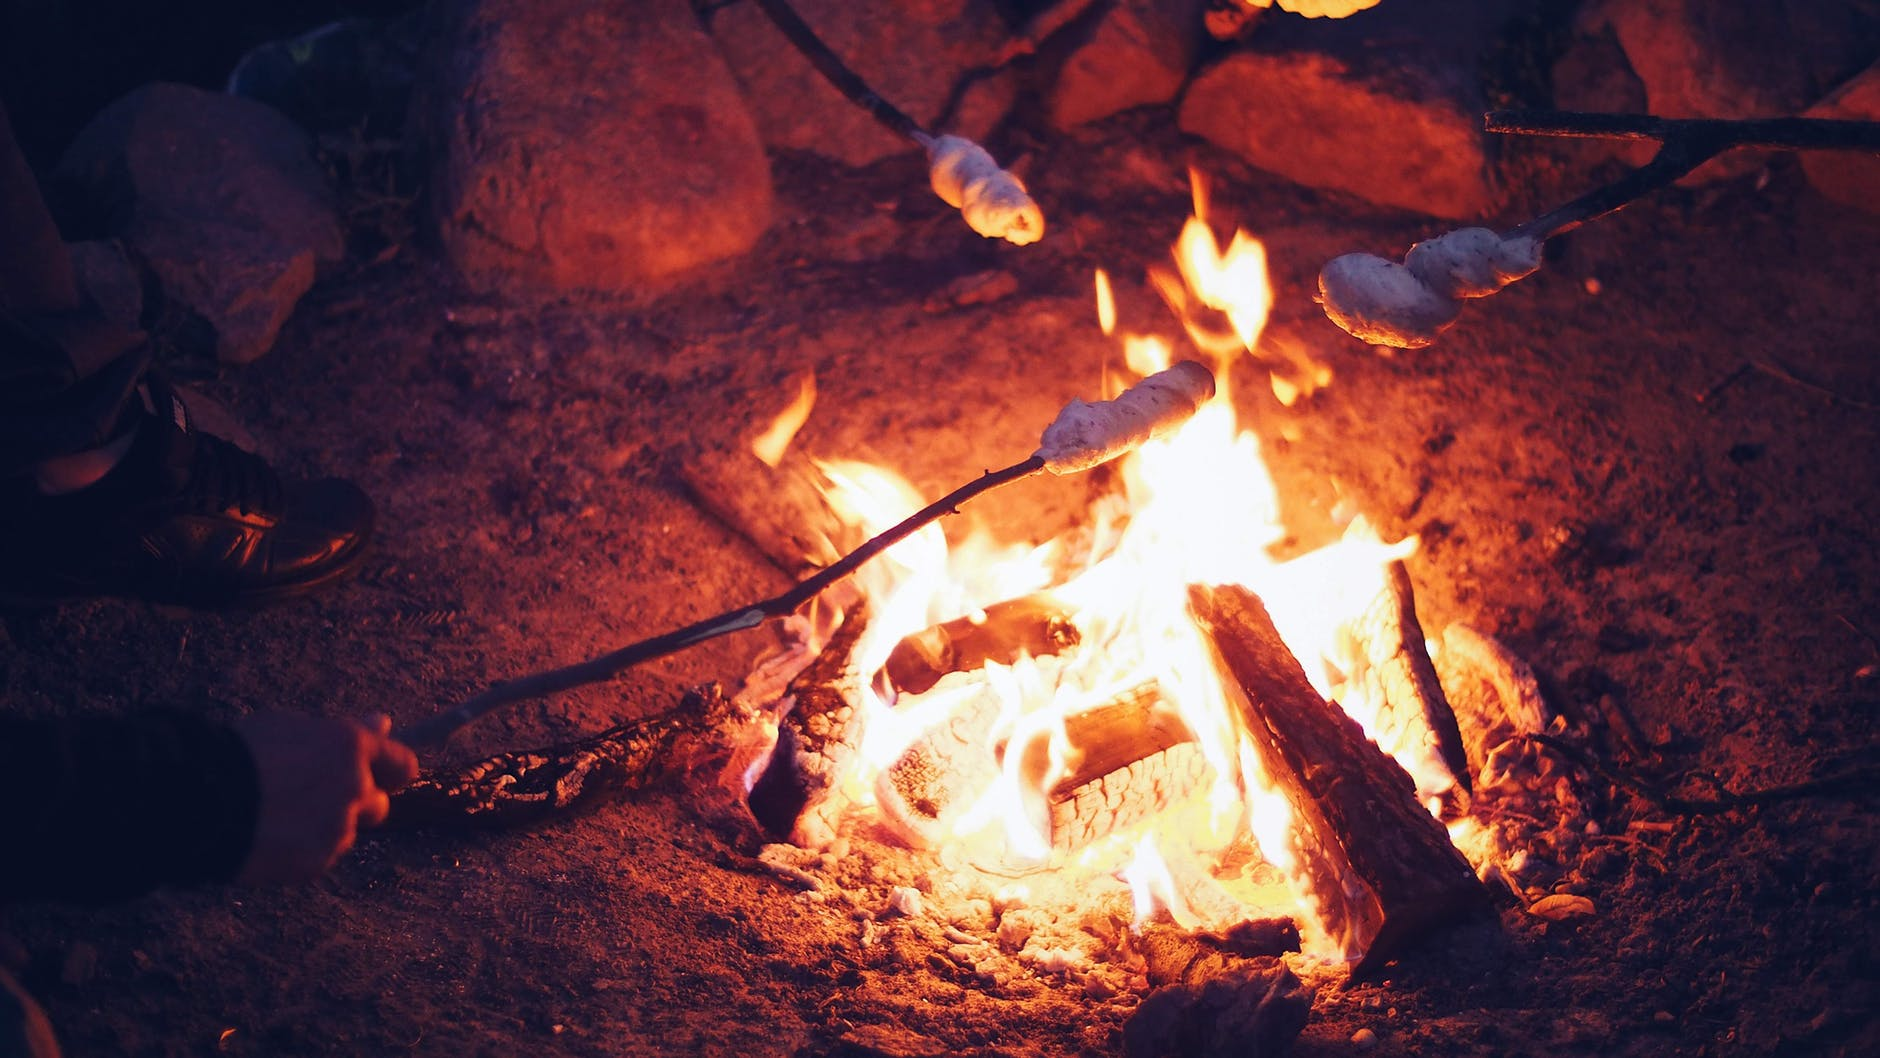 People toasting marshmallows on sticks over an open fire